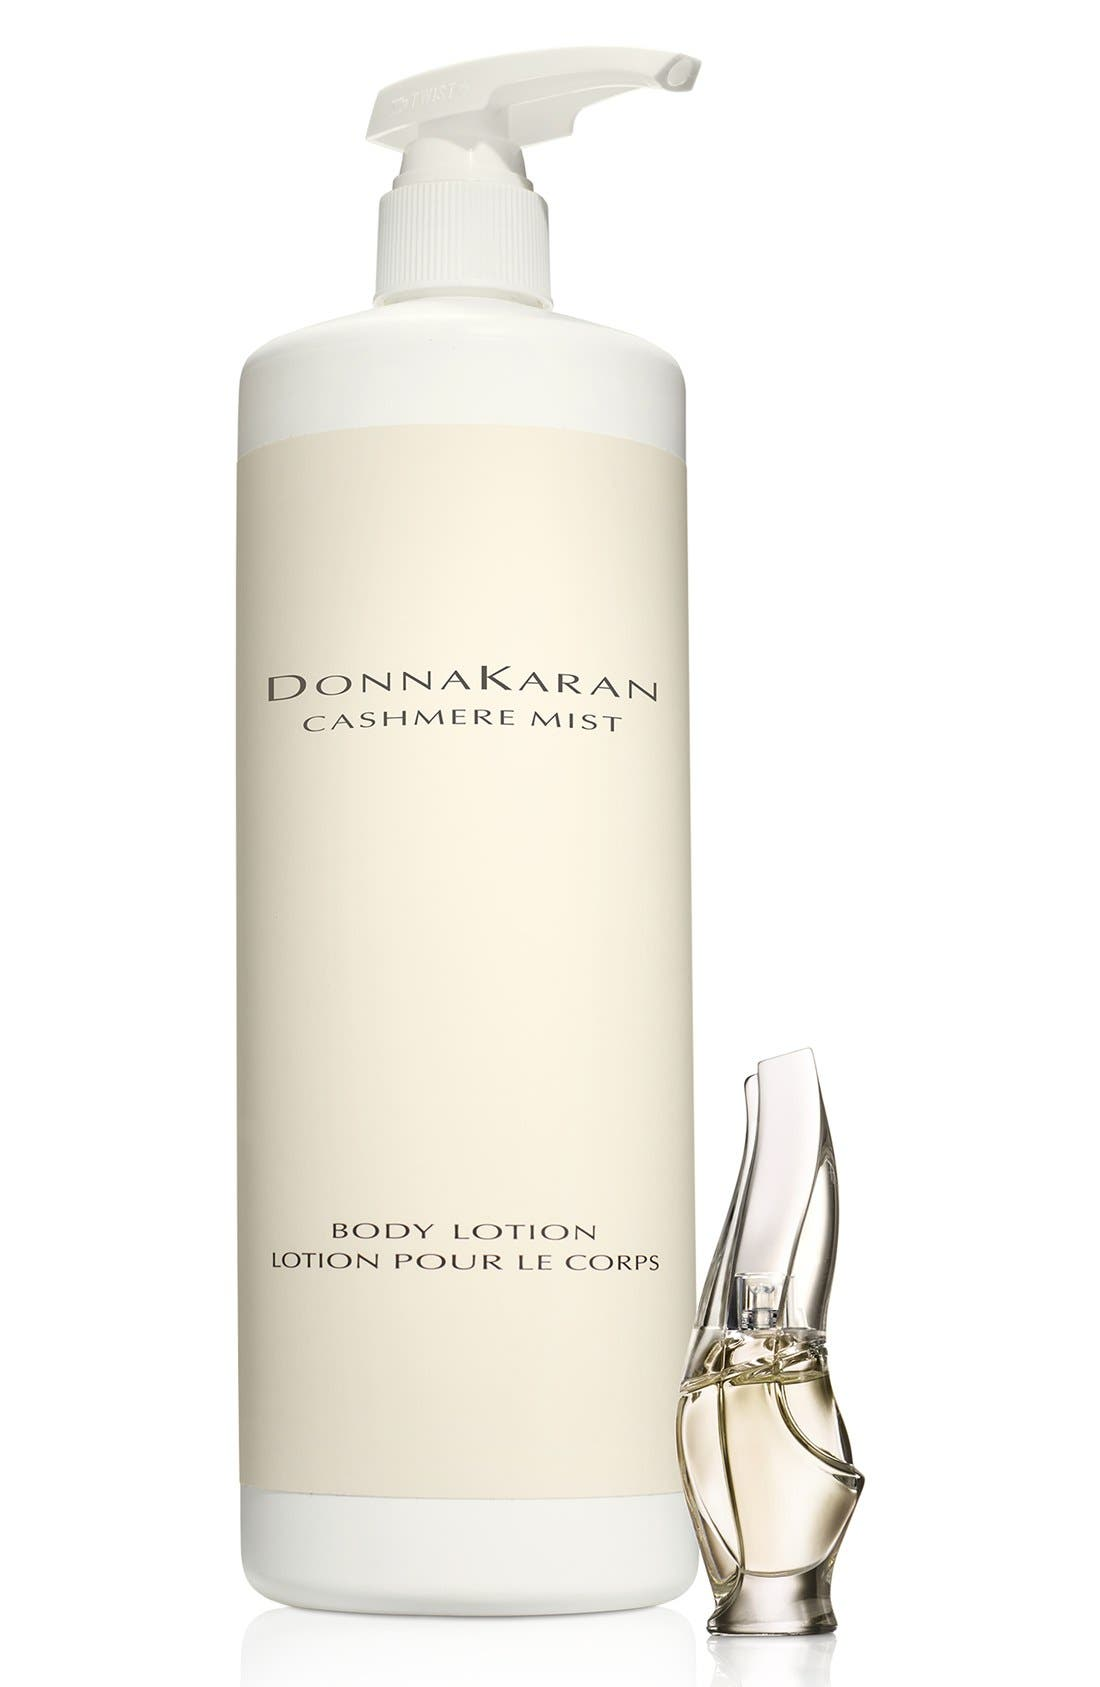 Donna Karan Cashmere Mist Body Lotion & Fragrance Duo ($267 Value)